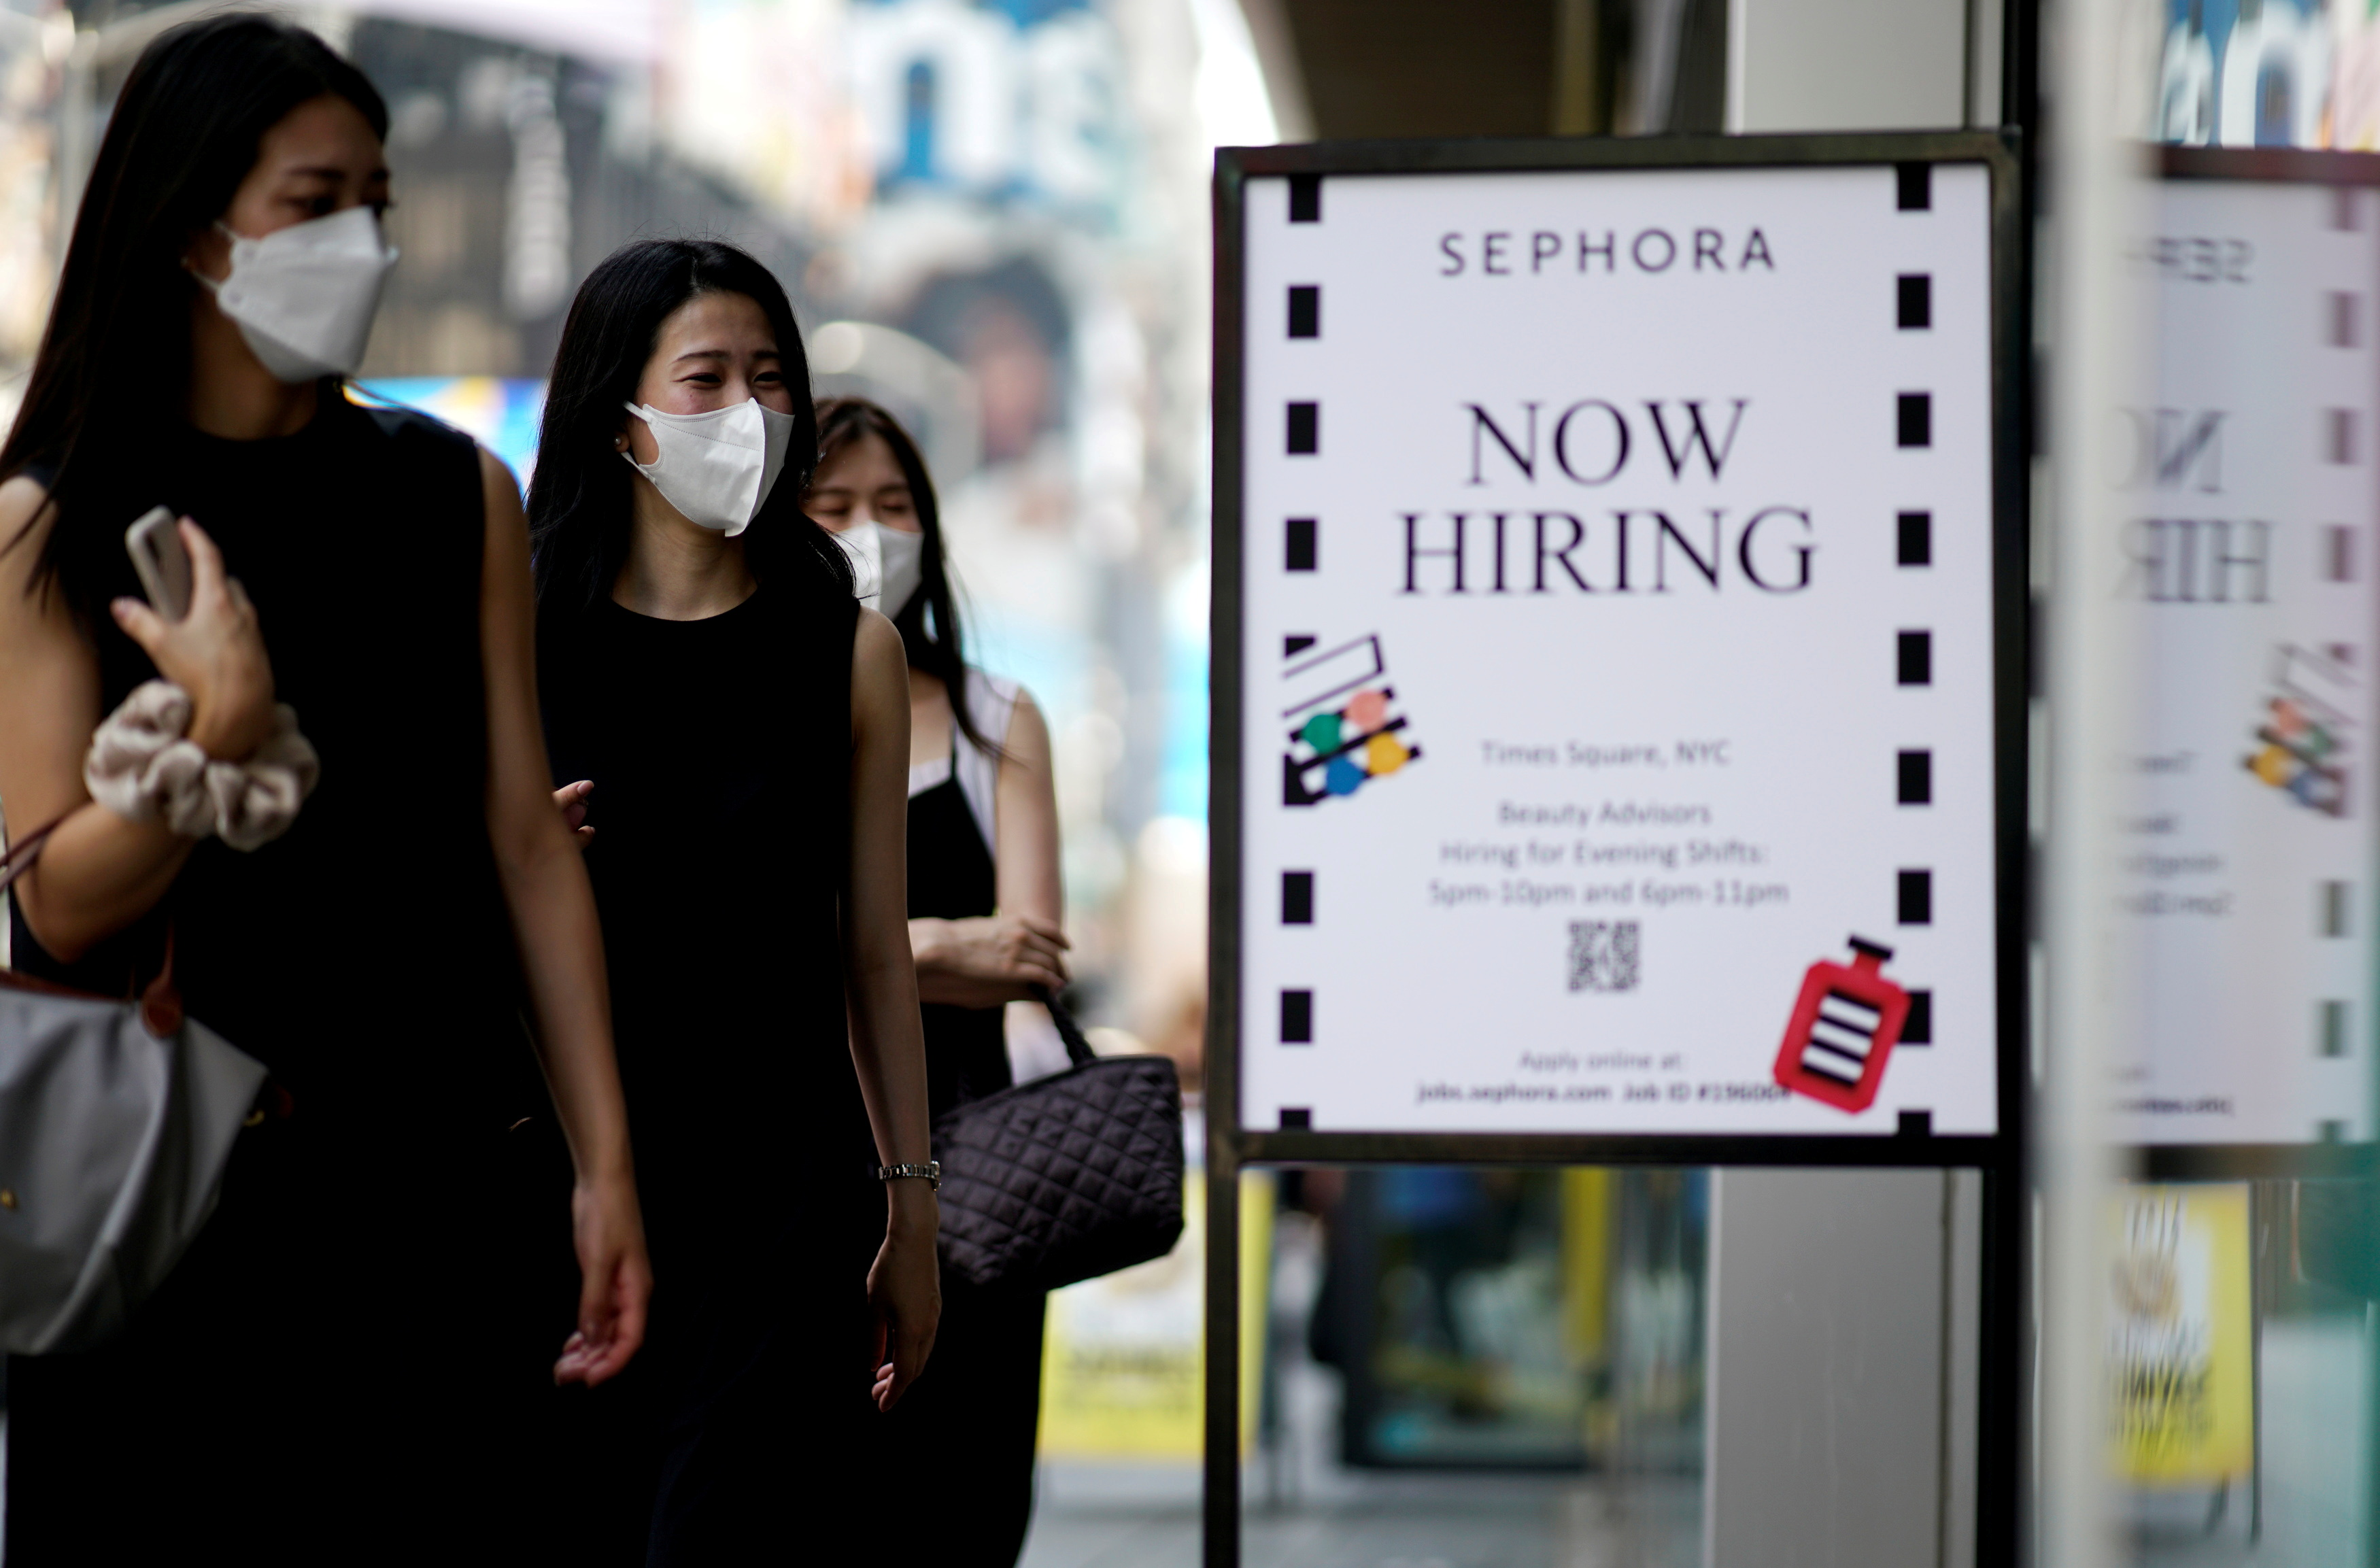 A sign advertising job openings is seen while people walk into the store in New York City, New York, U.S., August 6, 2021. REUTERS/Eduardo Munoz/File Photo